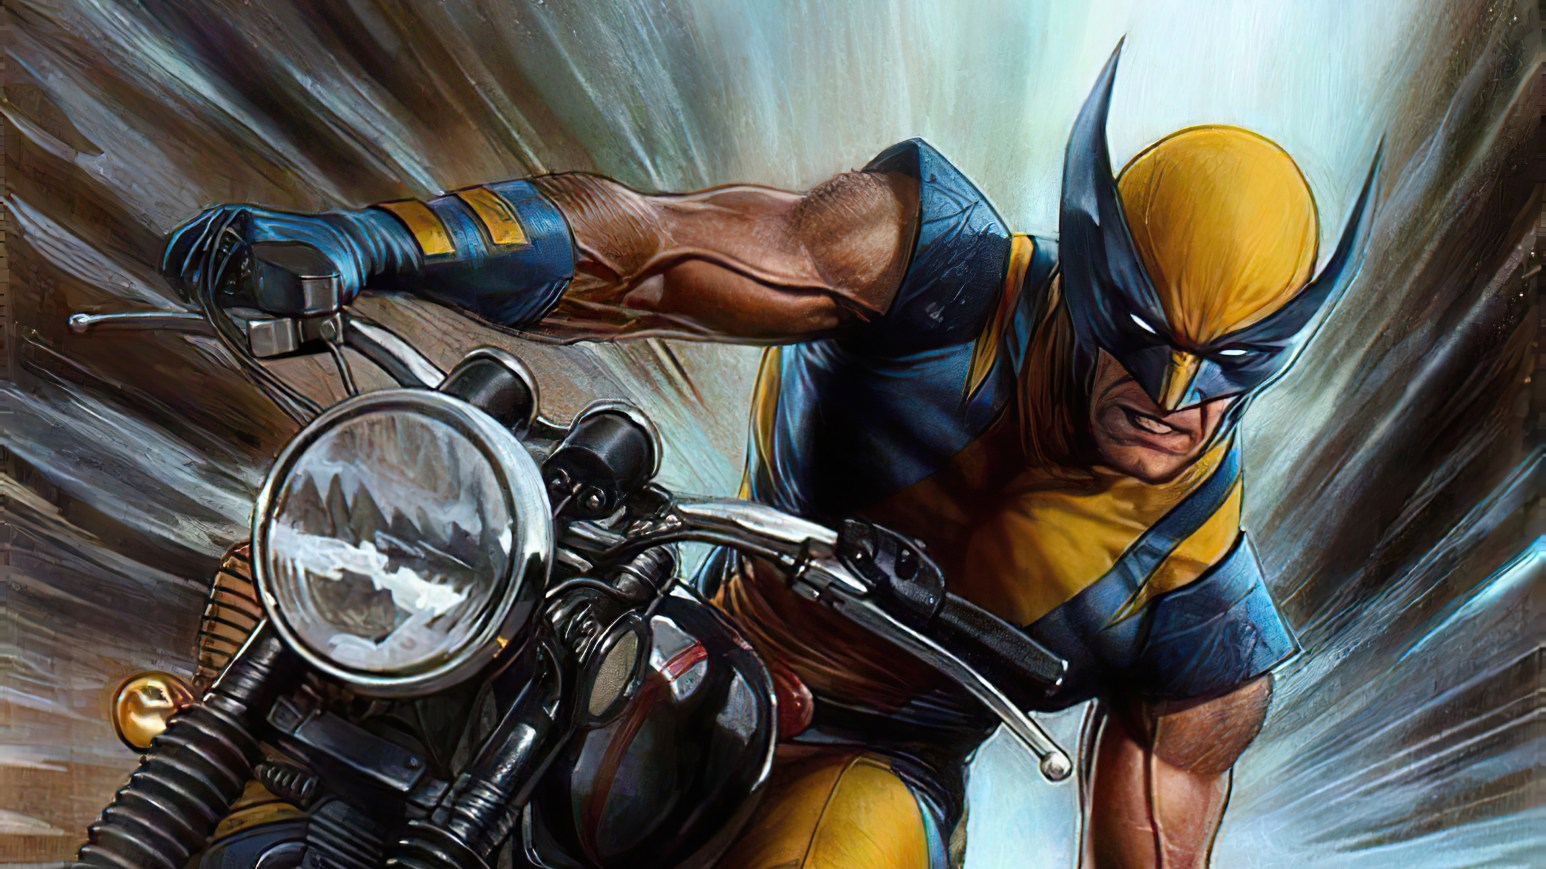 Wolverine on a motorcycle